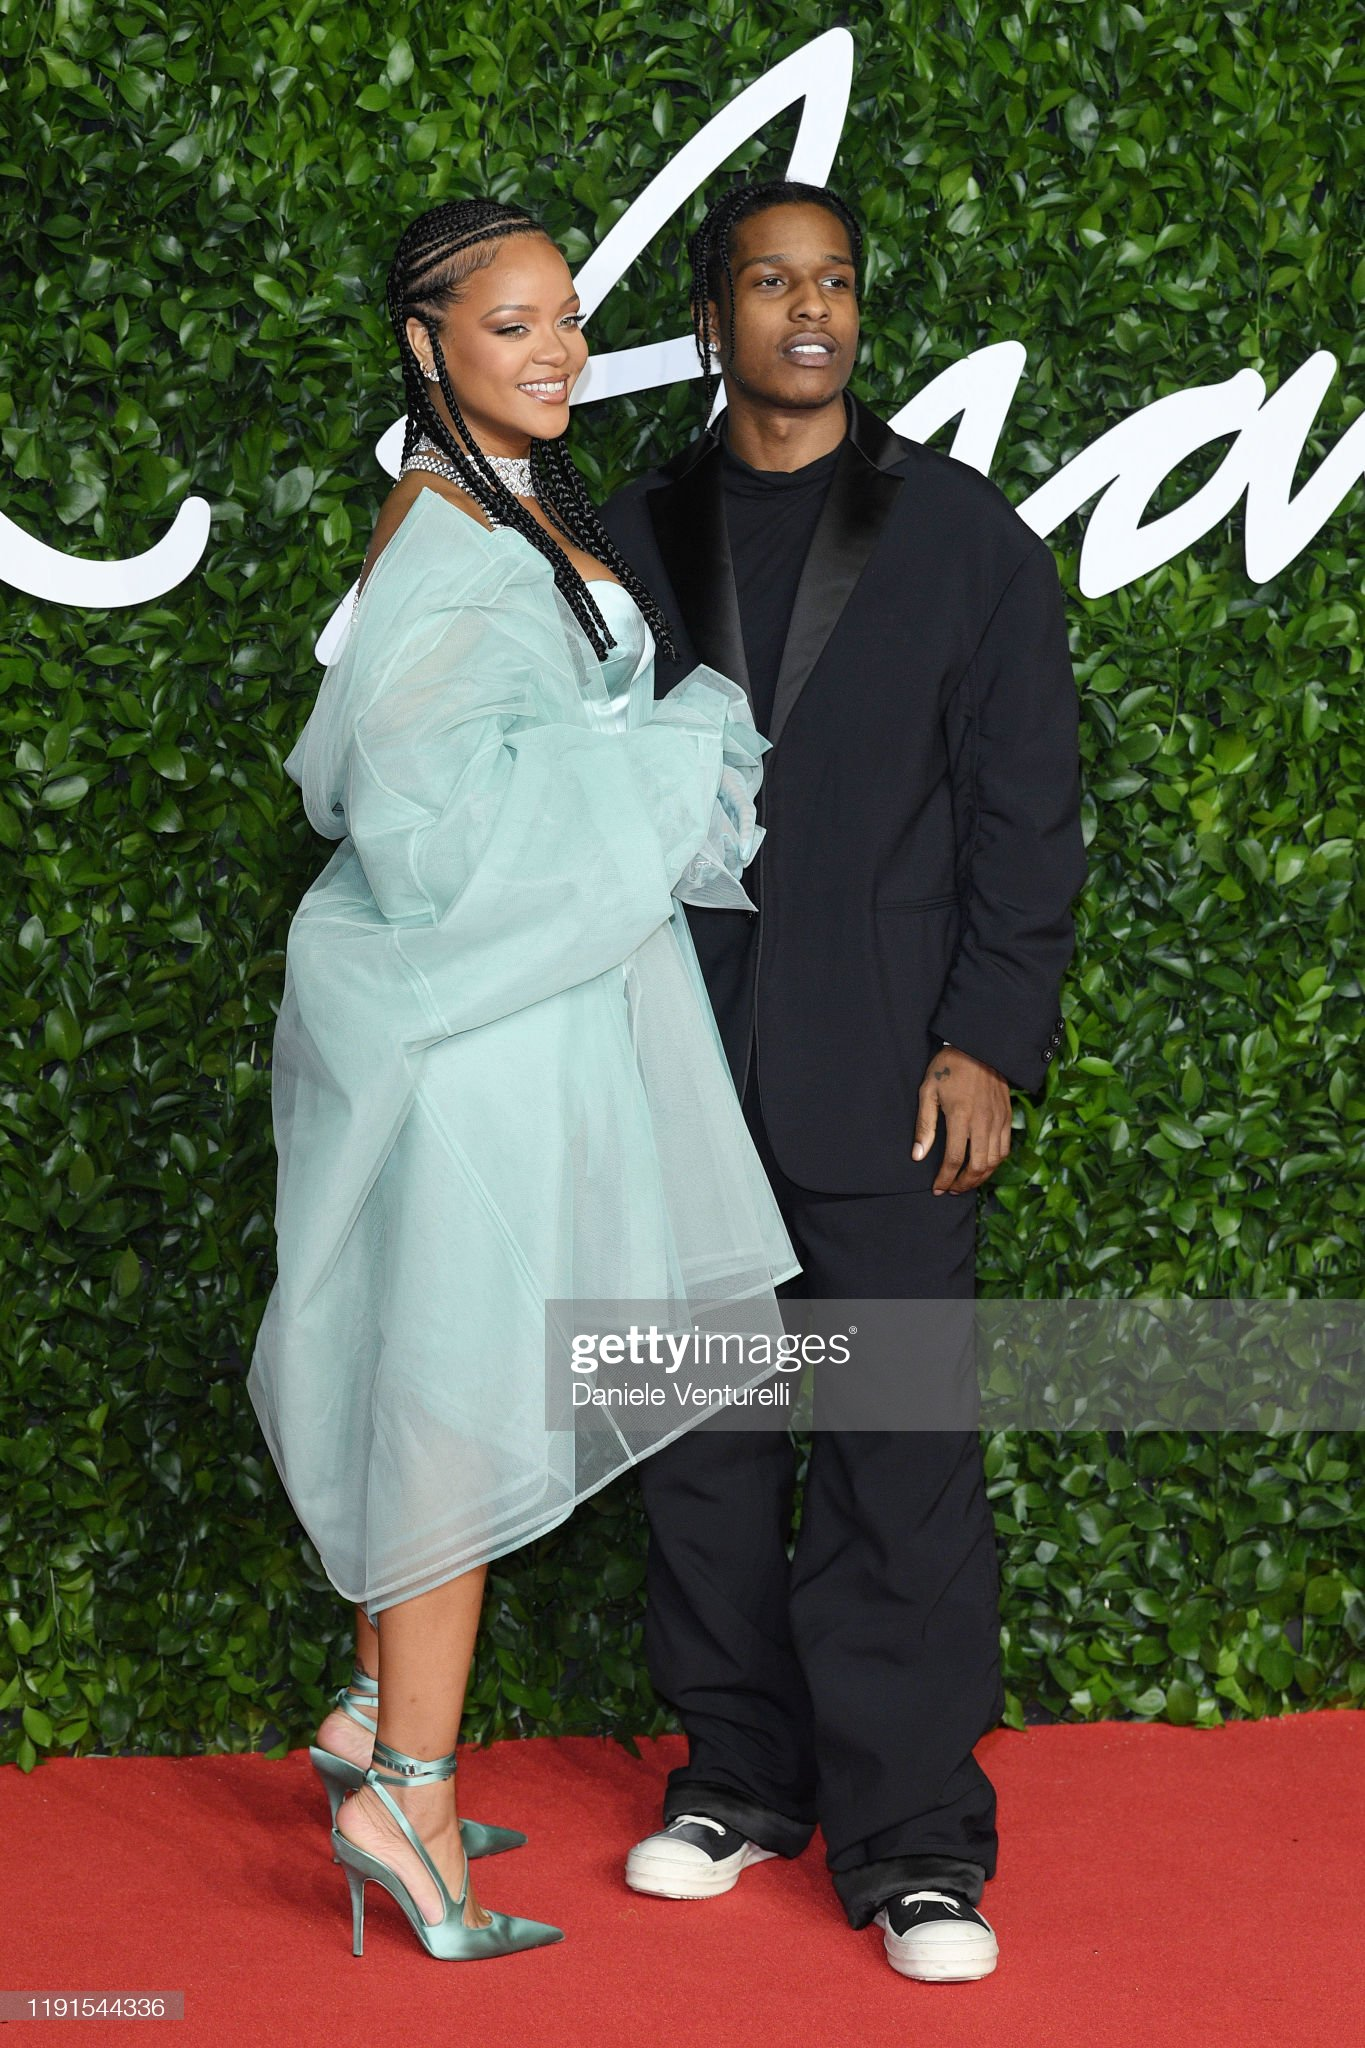 ¿Cuánto mide ASAP Rocky? - Altura - Real height Rihanna-and-asap-rocky-arrive-at-the-fashion-awards-2019-held-at-picture-id1191544336?s=2048x2048